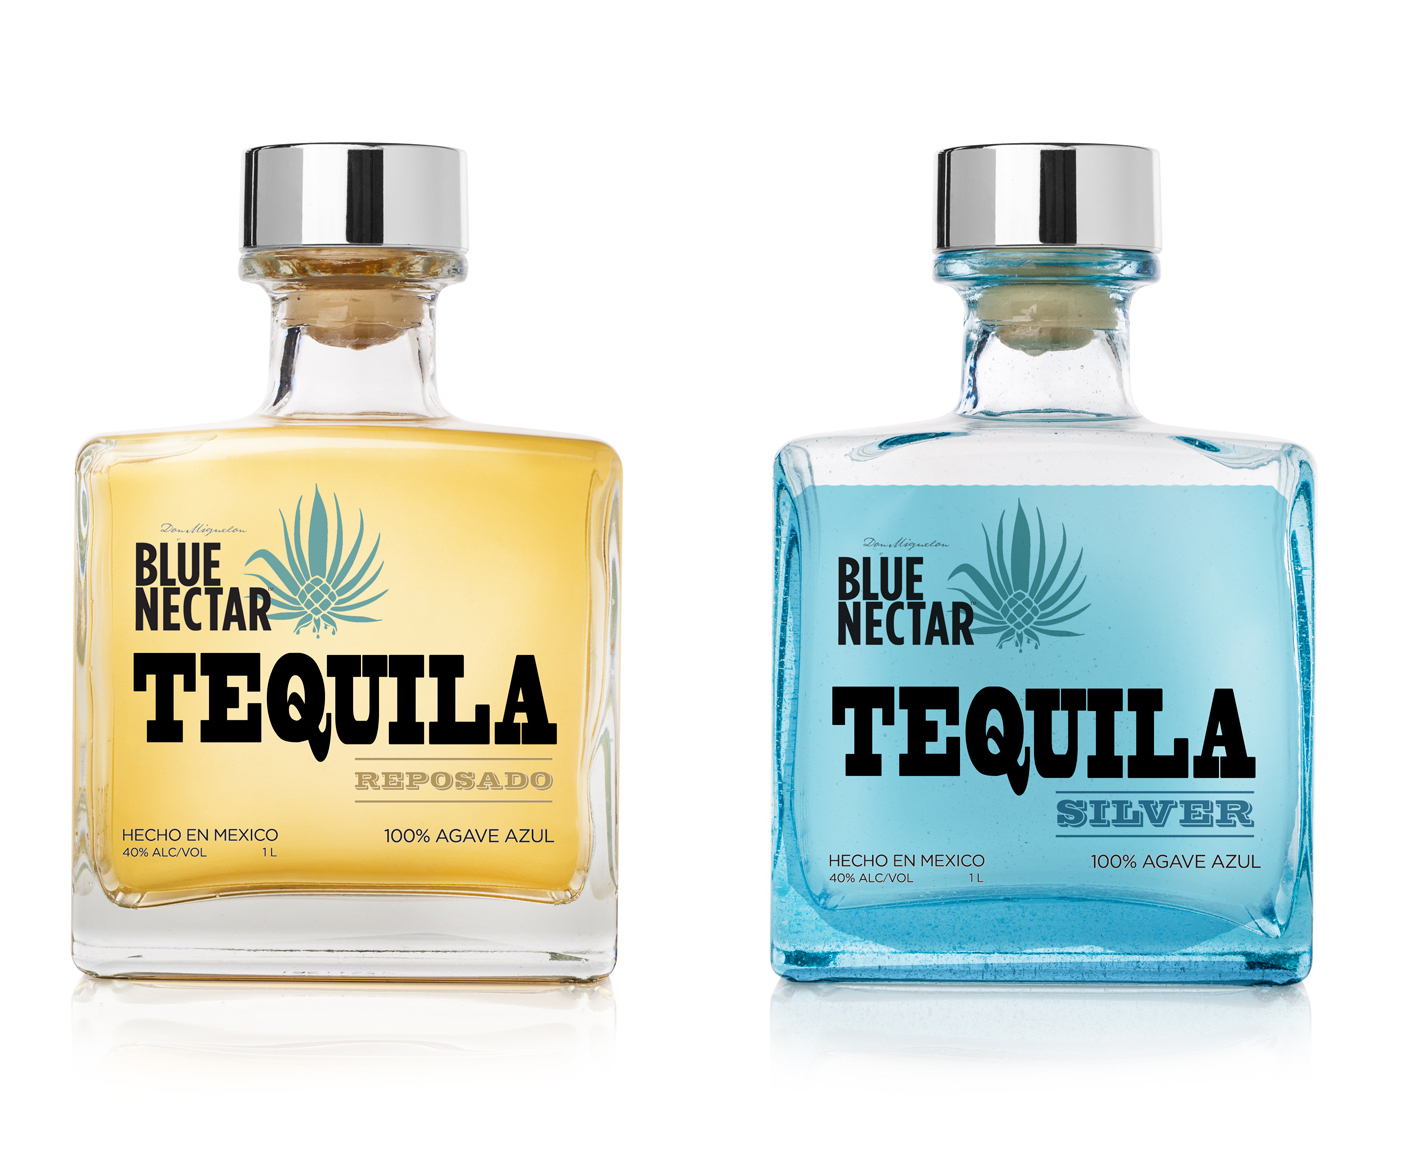 Blue Nectar Tequila - Refresh of a tequila brand that leverages a transparent label to allow the color of the product to show through. The bold serif type and square bottle are intended to evoke a southwestern masculinity.